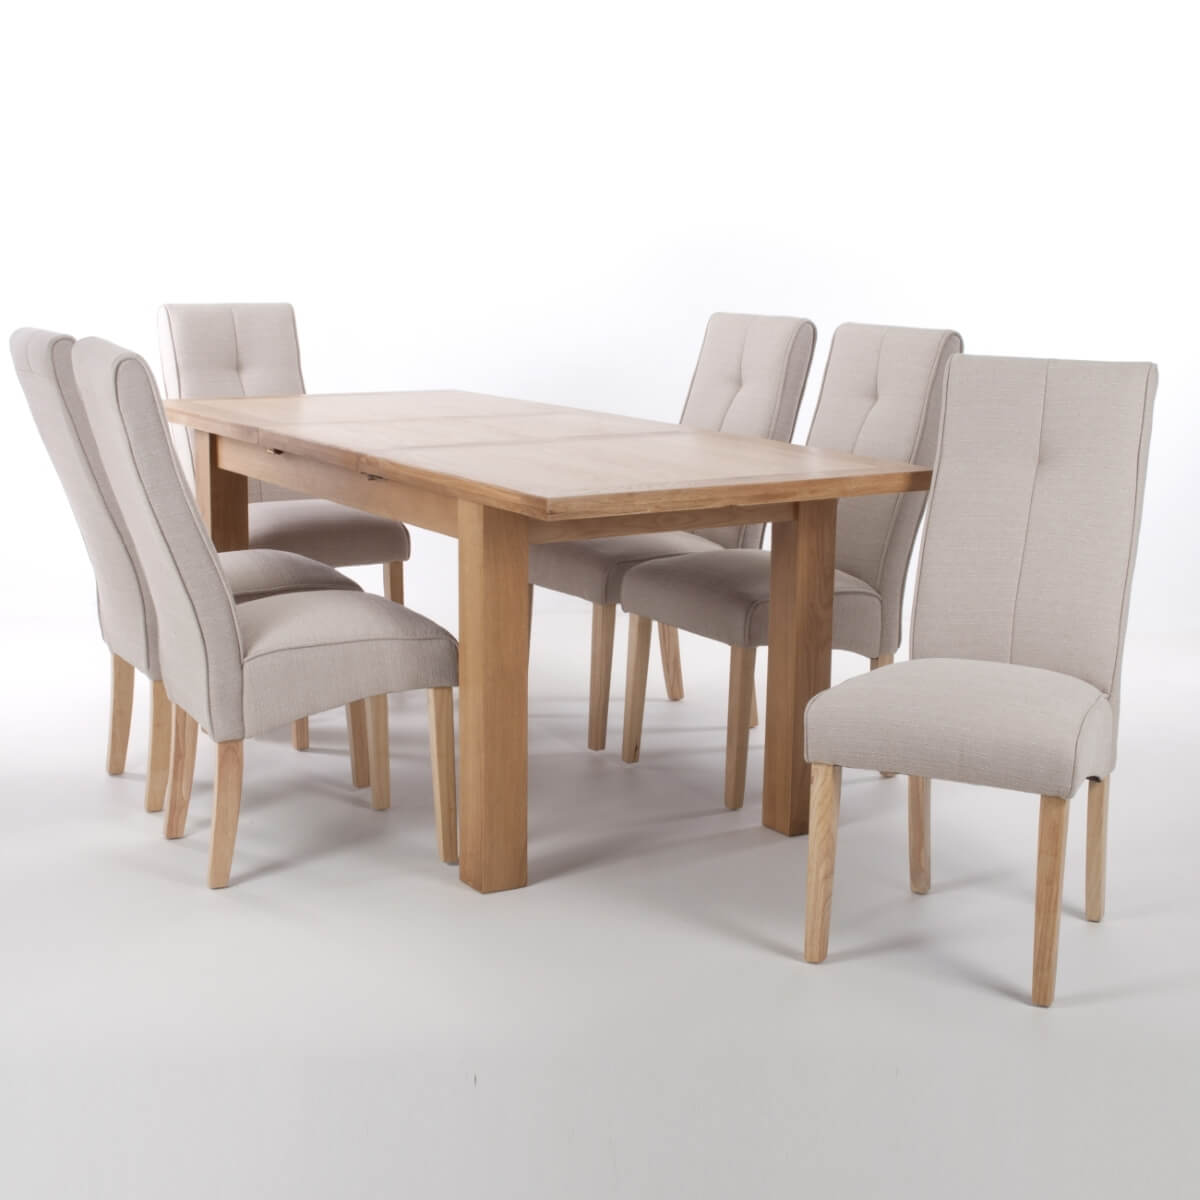 Extending Oak Table Dining Set Shankar Solid Oak Extending Dining Table And 6 Linea Cream Dining Chairs